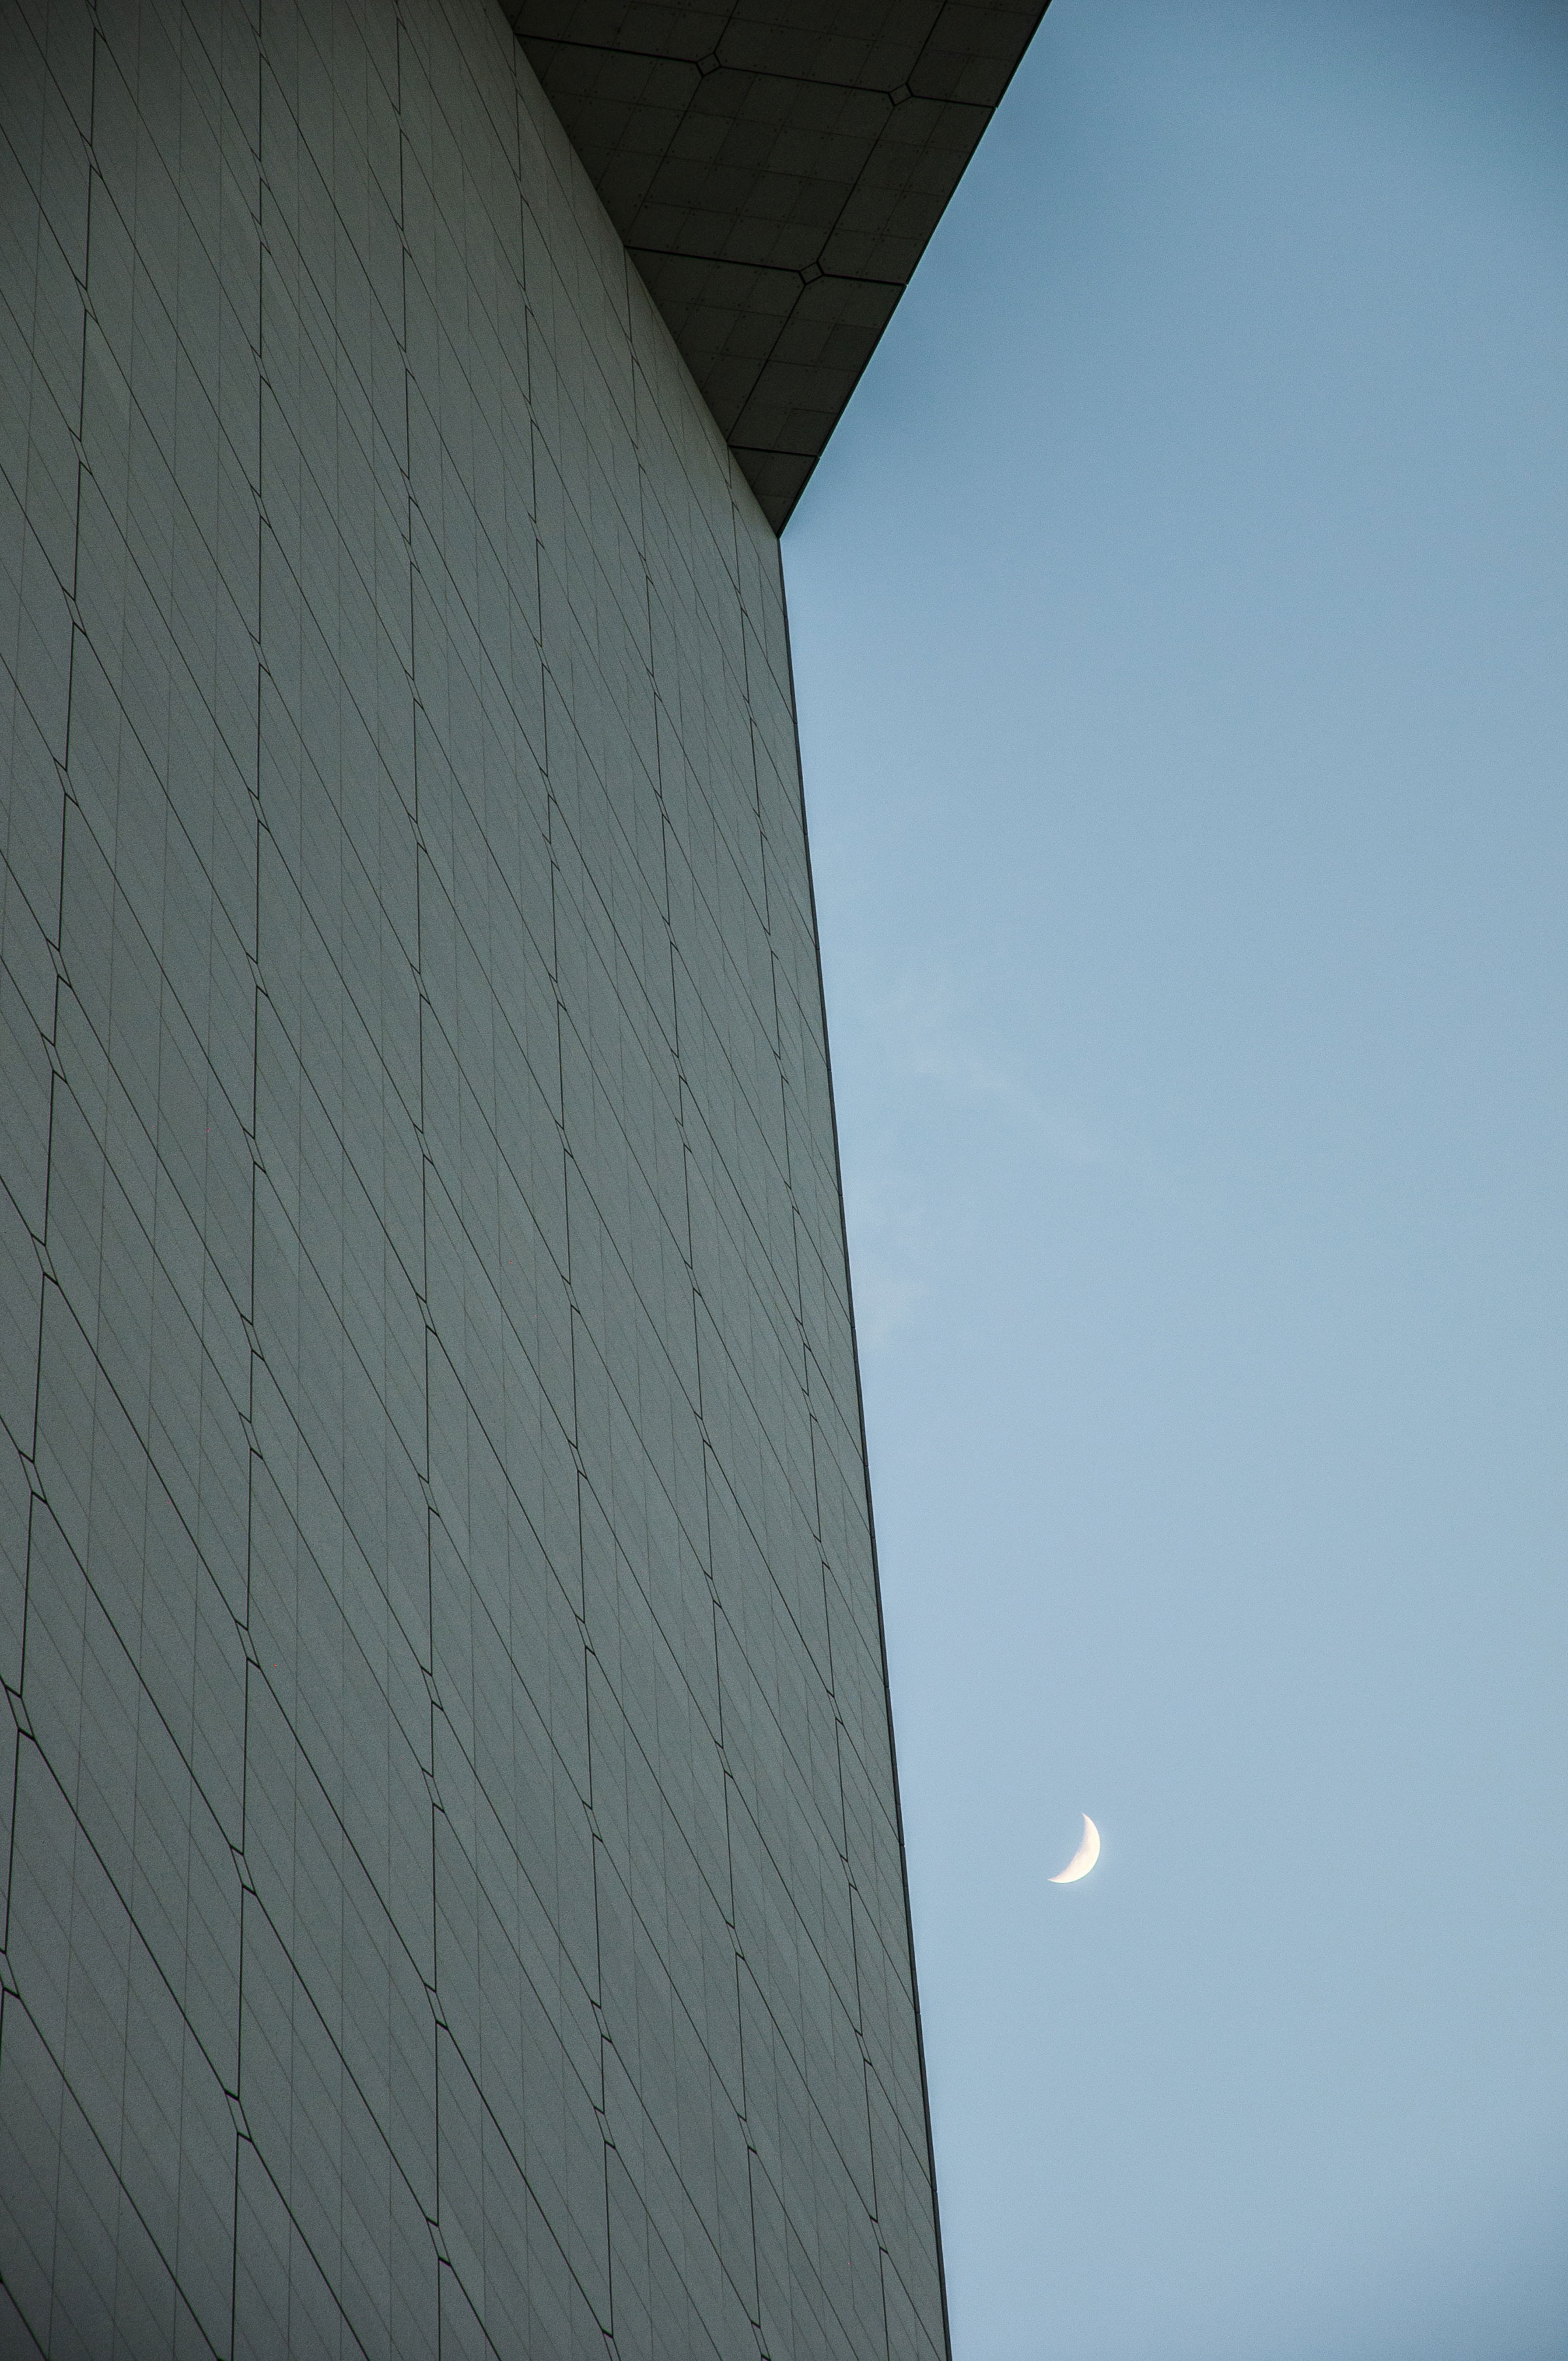 Abstract architecture photography with the moon and the top of the Arch of La Défense, Paris, France. (Nos Dren)